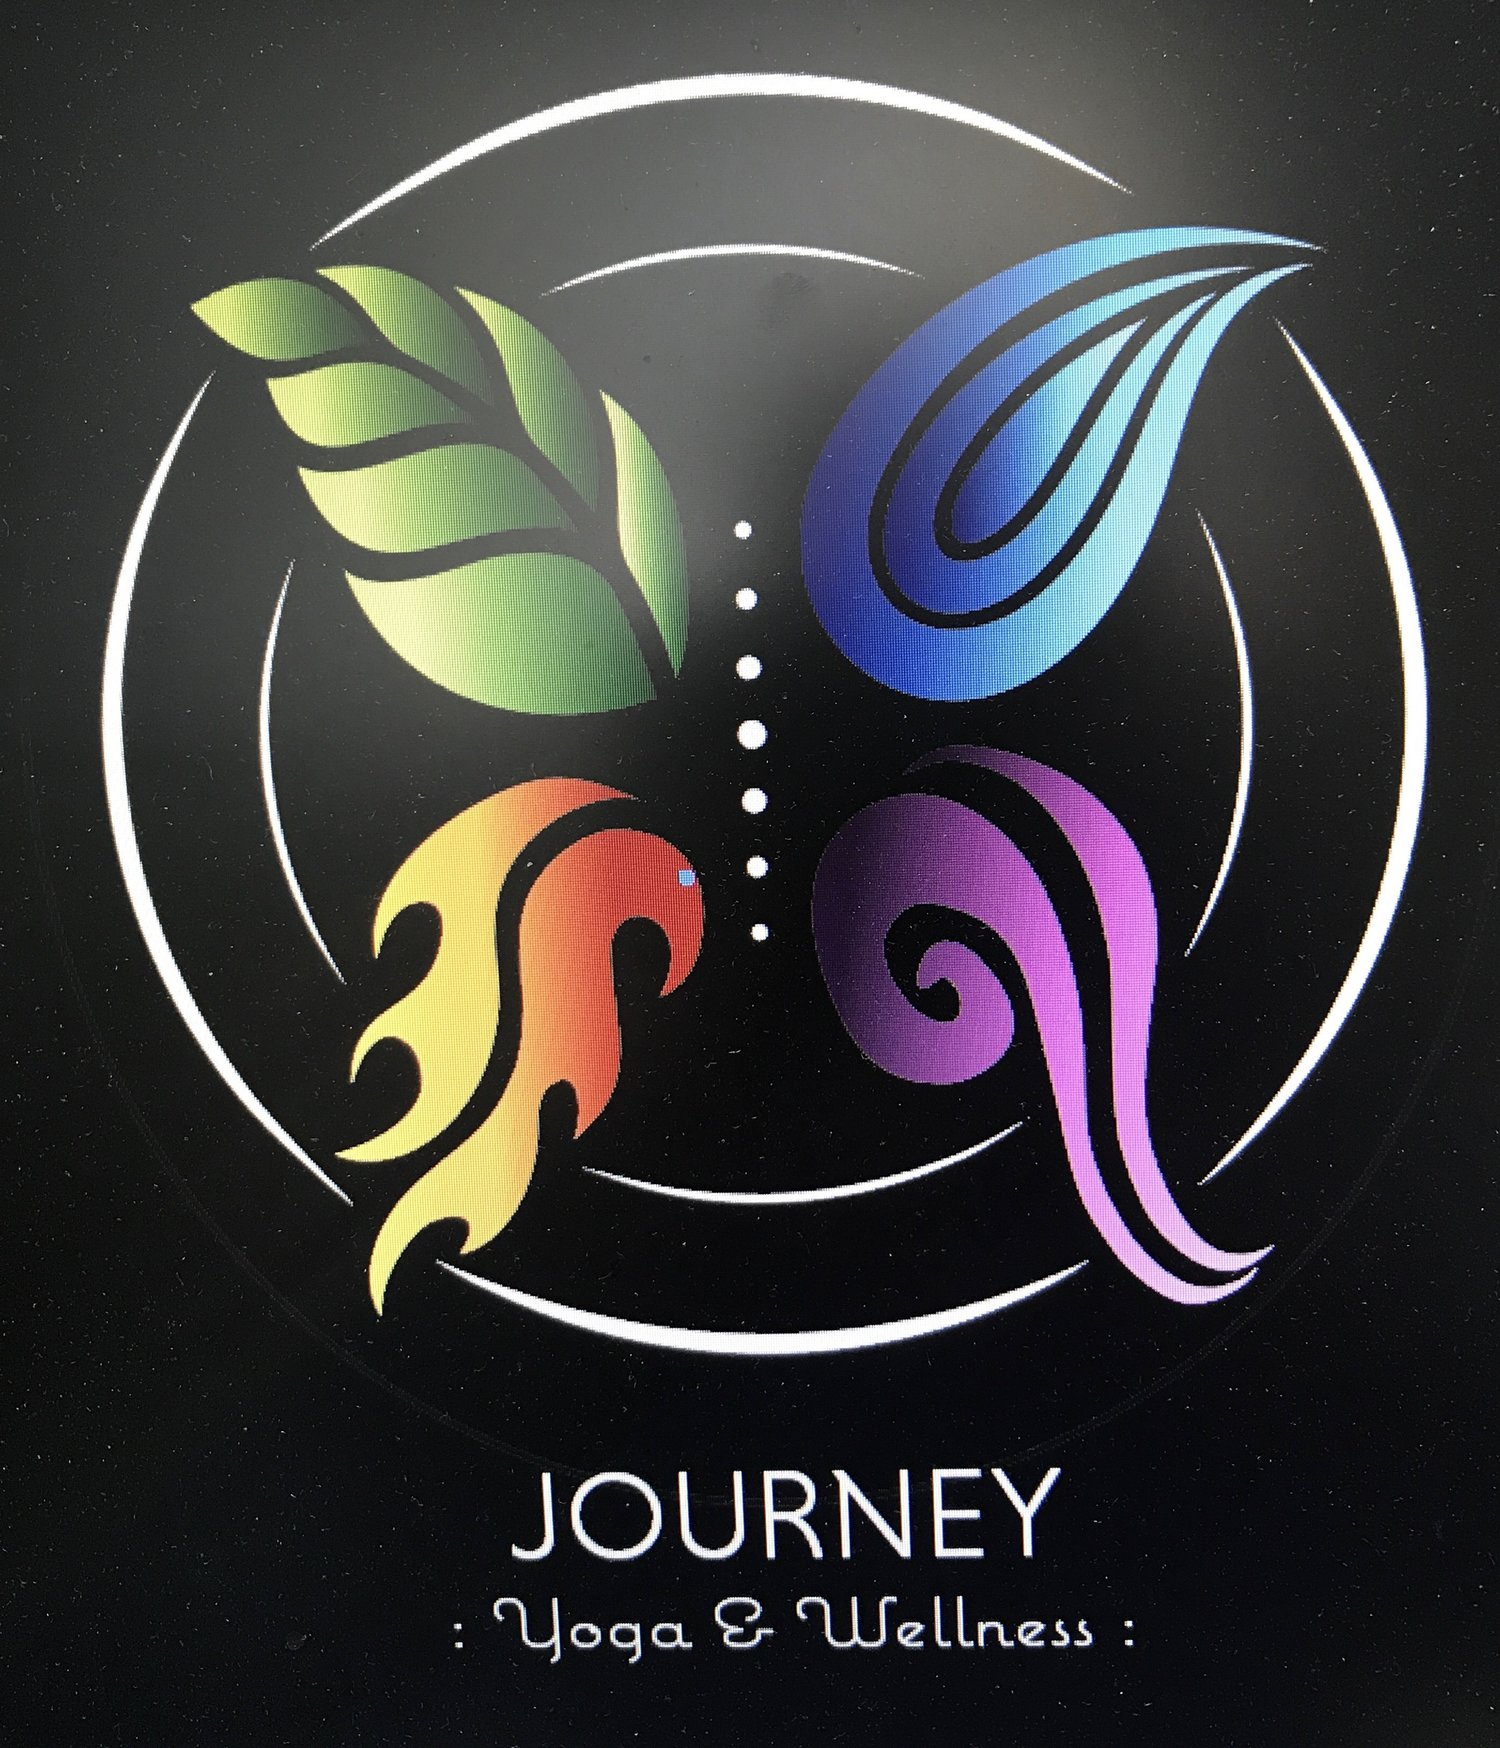 Journey Yoga & Wellness